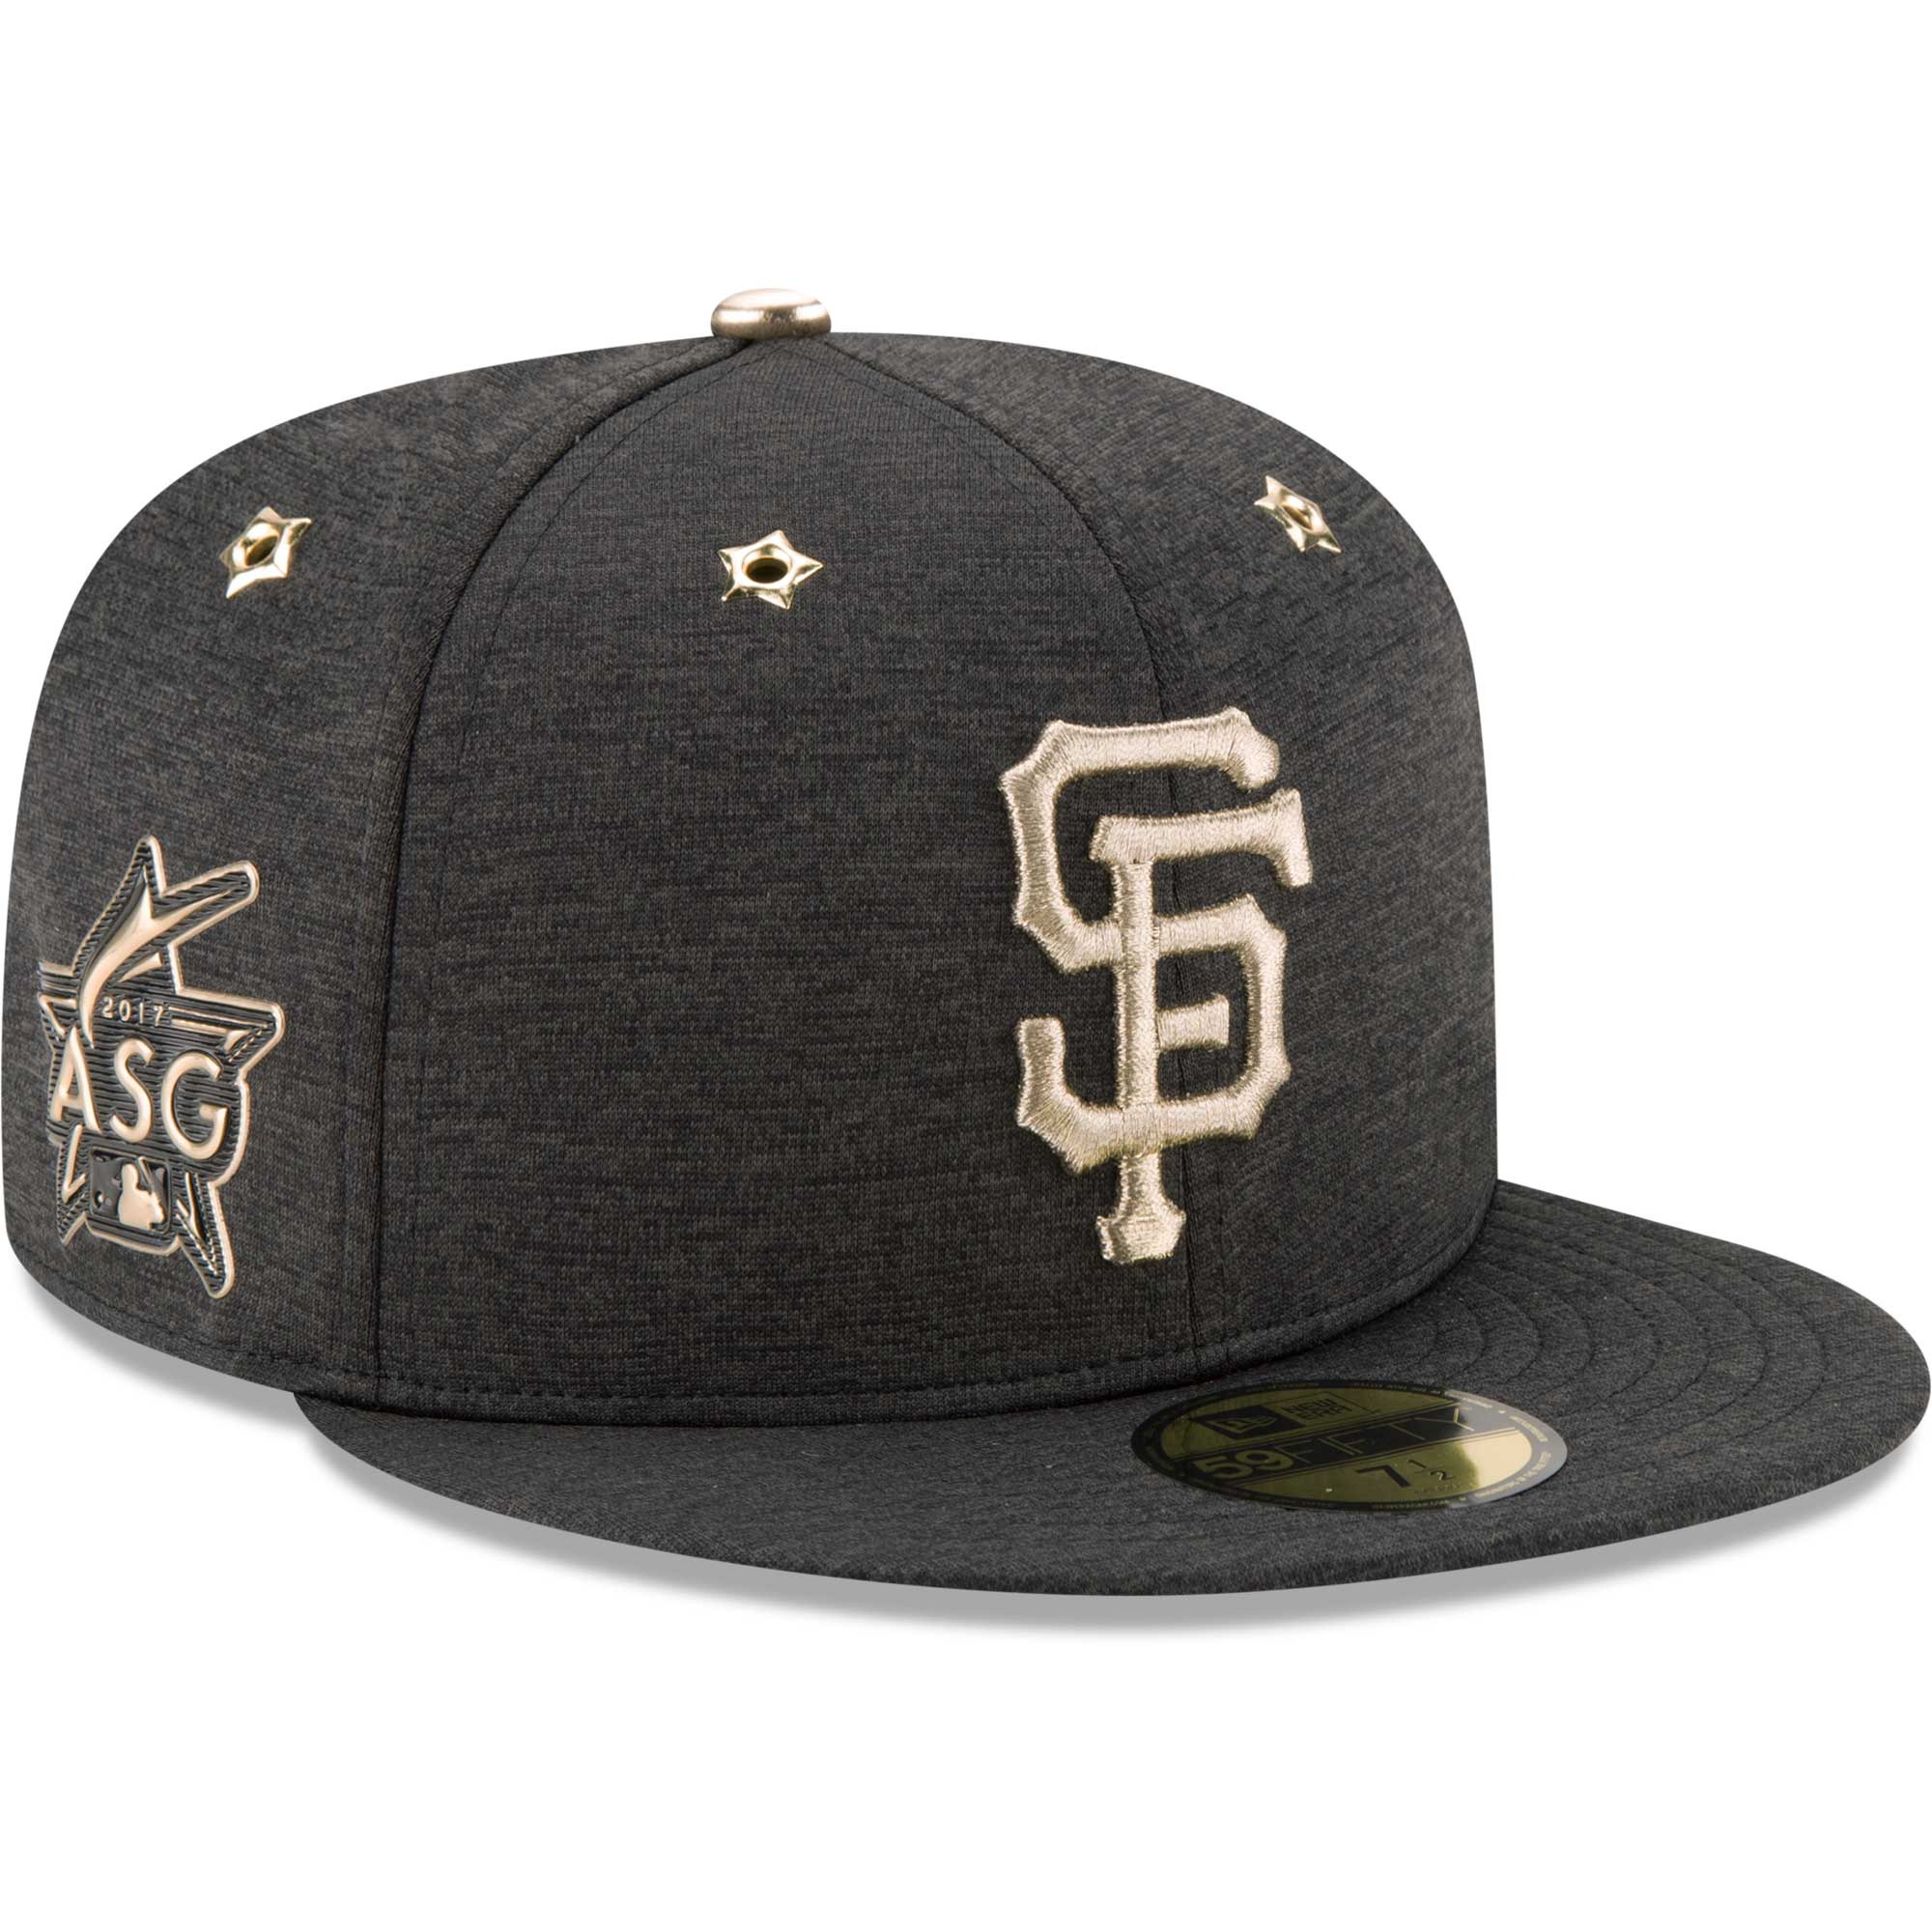 save off 7bdcd b2537 ... czech san francisco giants new era 2017 mlb all star game side patch  59fifty fitted hat